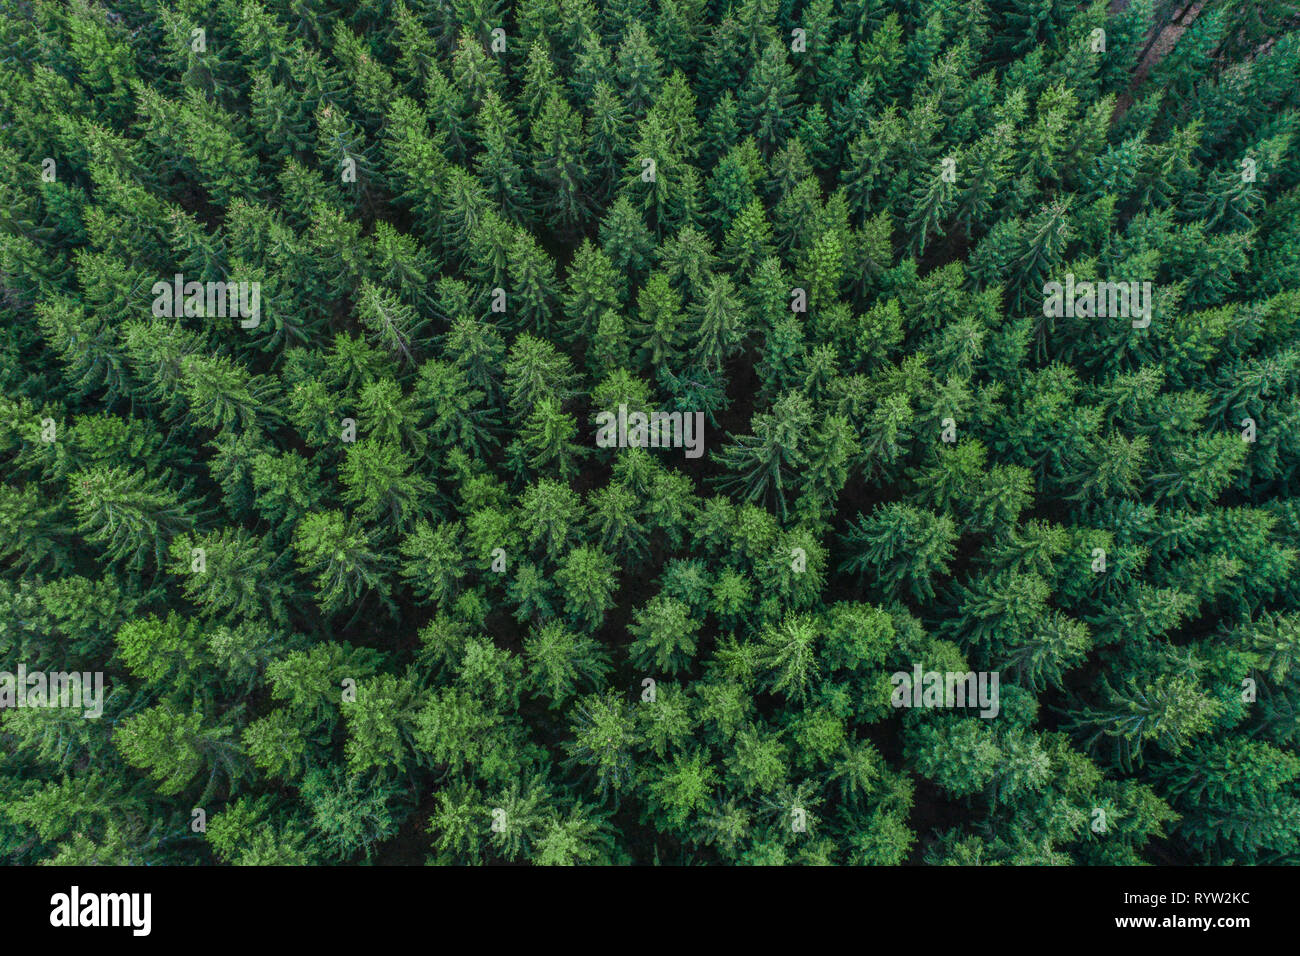 Green conifer treetops in forest - Aerial view, Germany Stock Photo